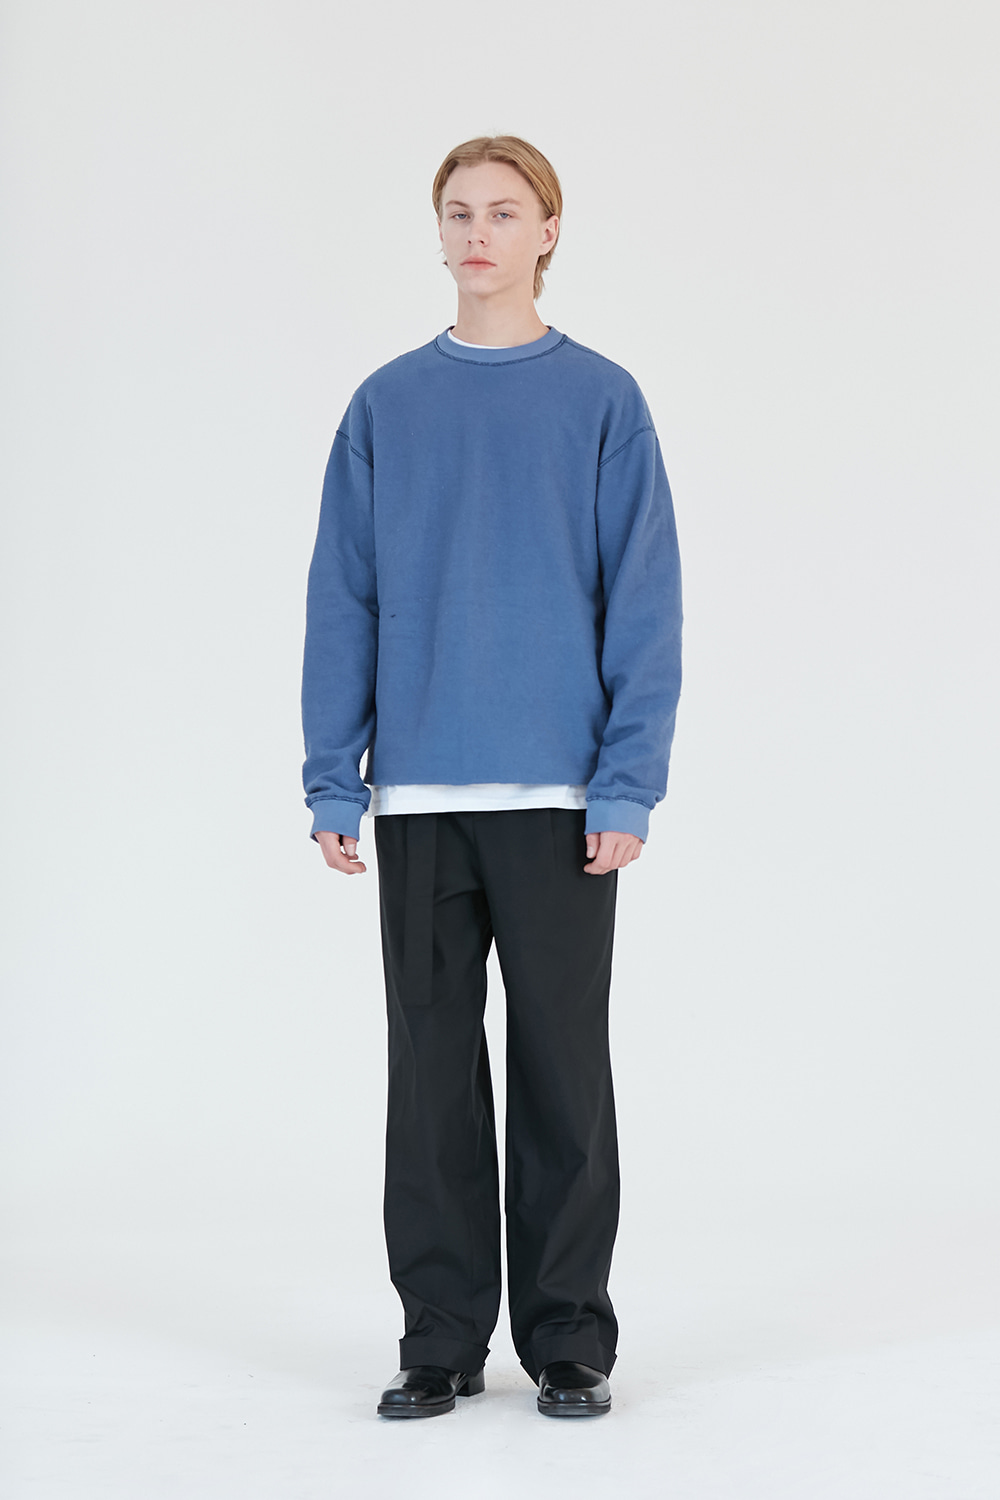 Reverse Sweatshirt Men [Pastel Blue]